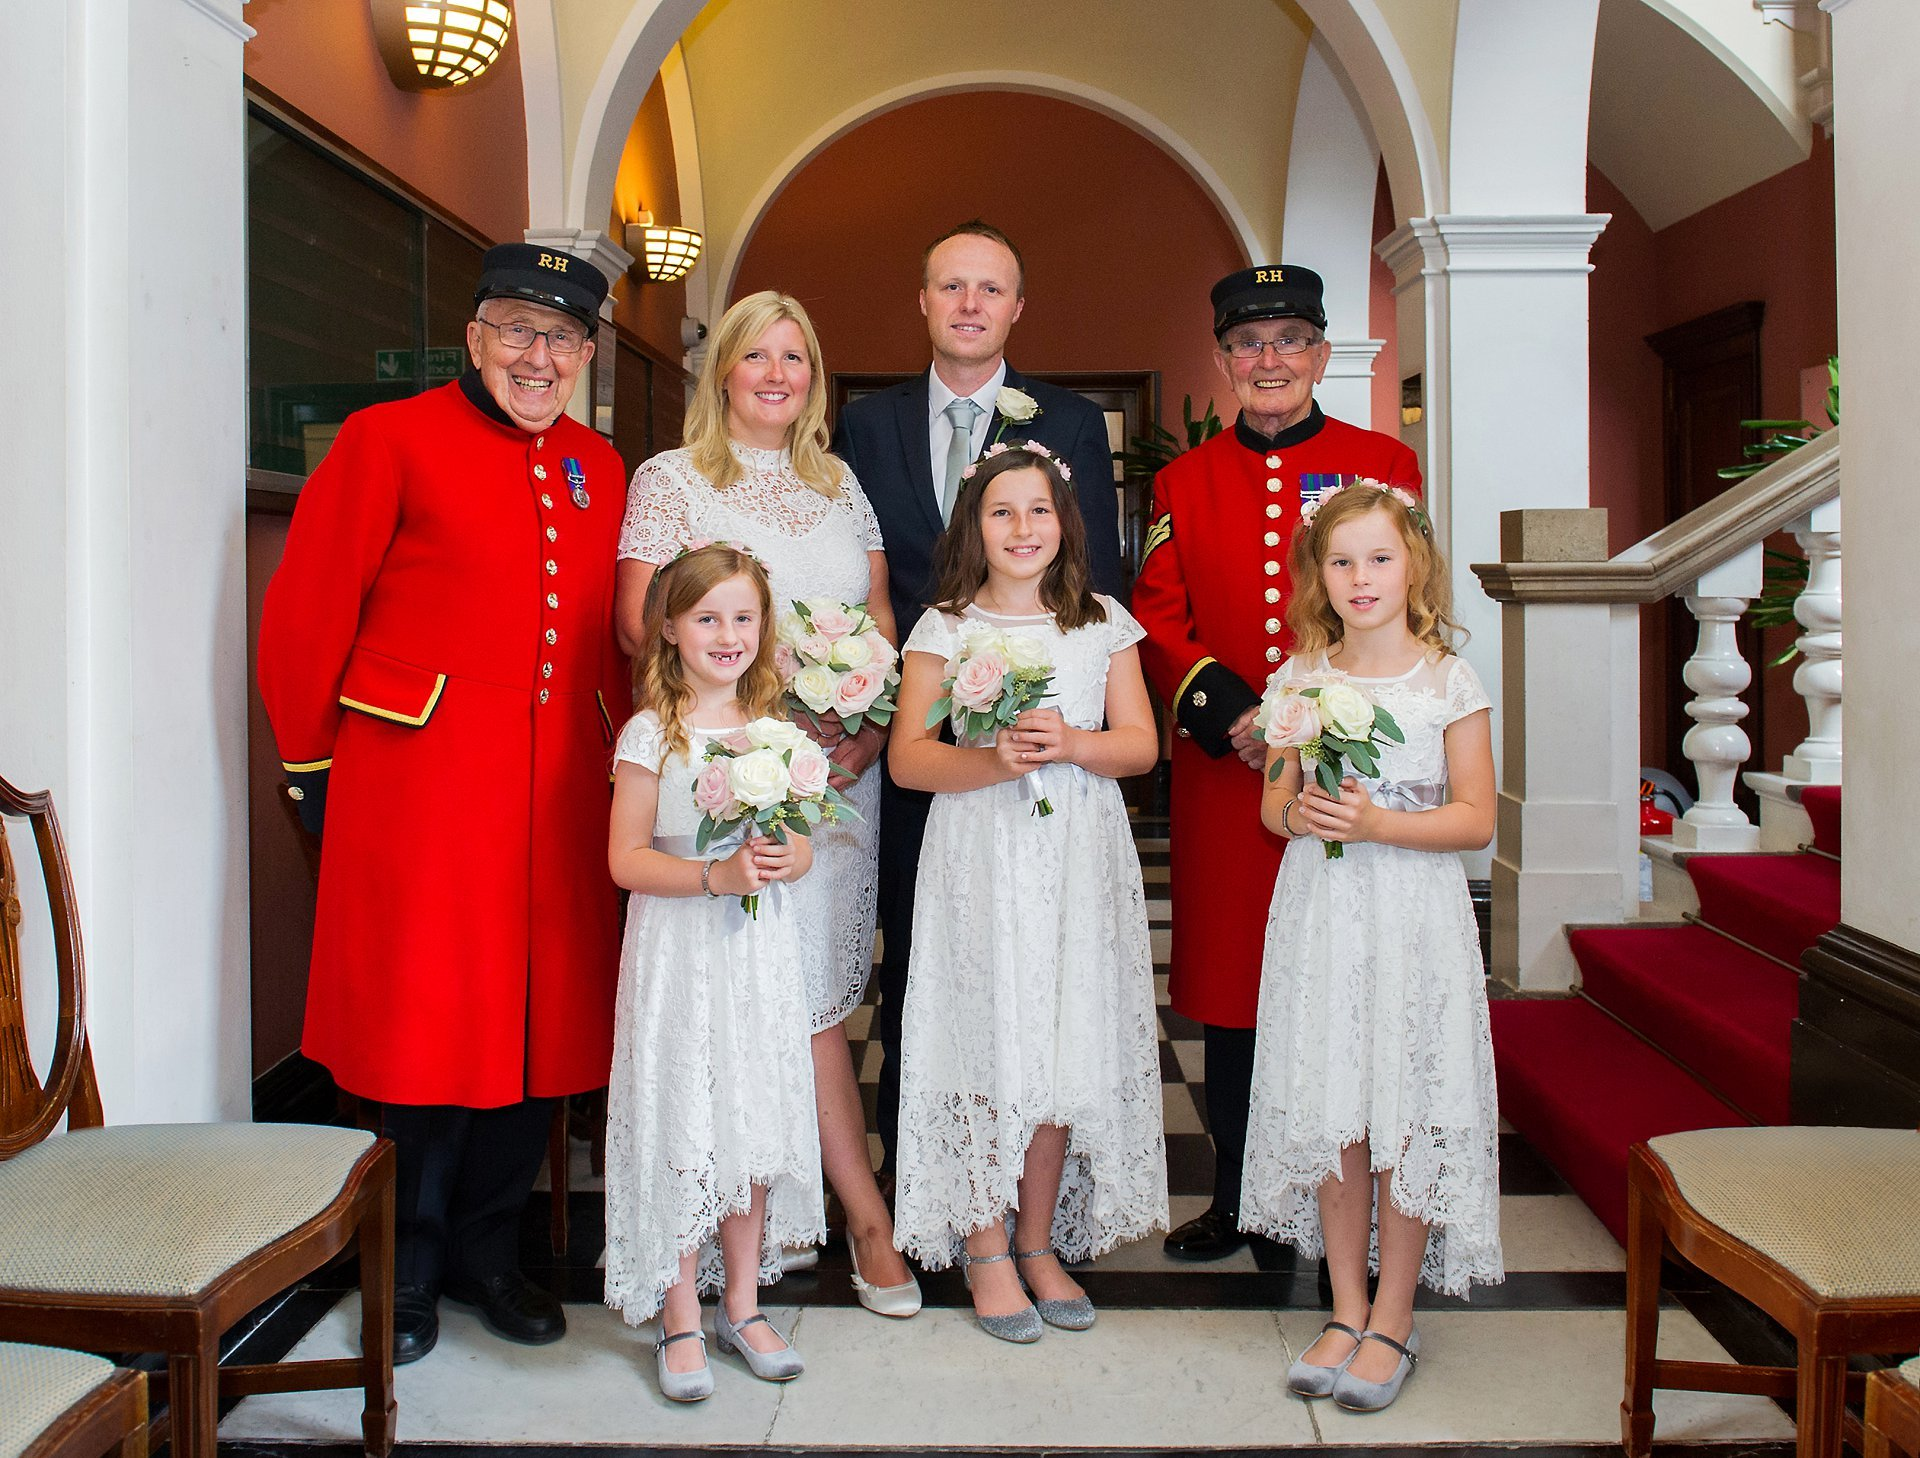 The couple, their three daughters and two Chelsea Pensioners in the waiting area at Chelsea Town Hall before their wedding ceremony